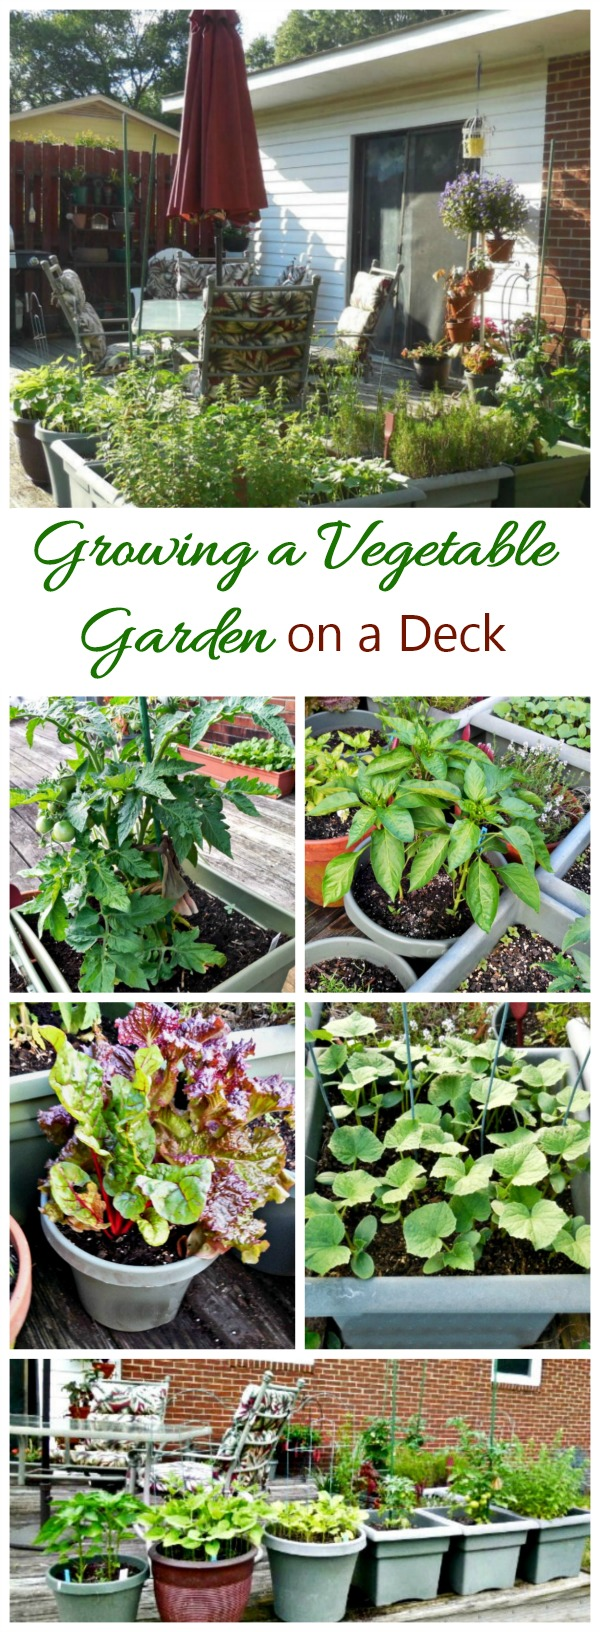 Growing a vegetable garden on a deck is a great way to go if you don't have much garden space